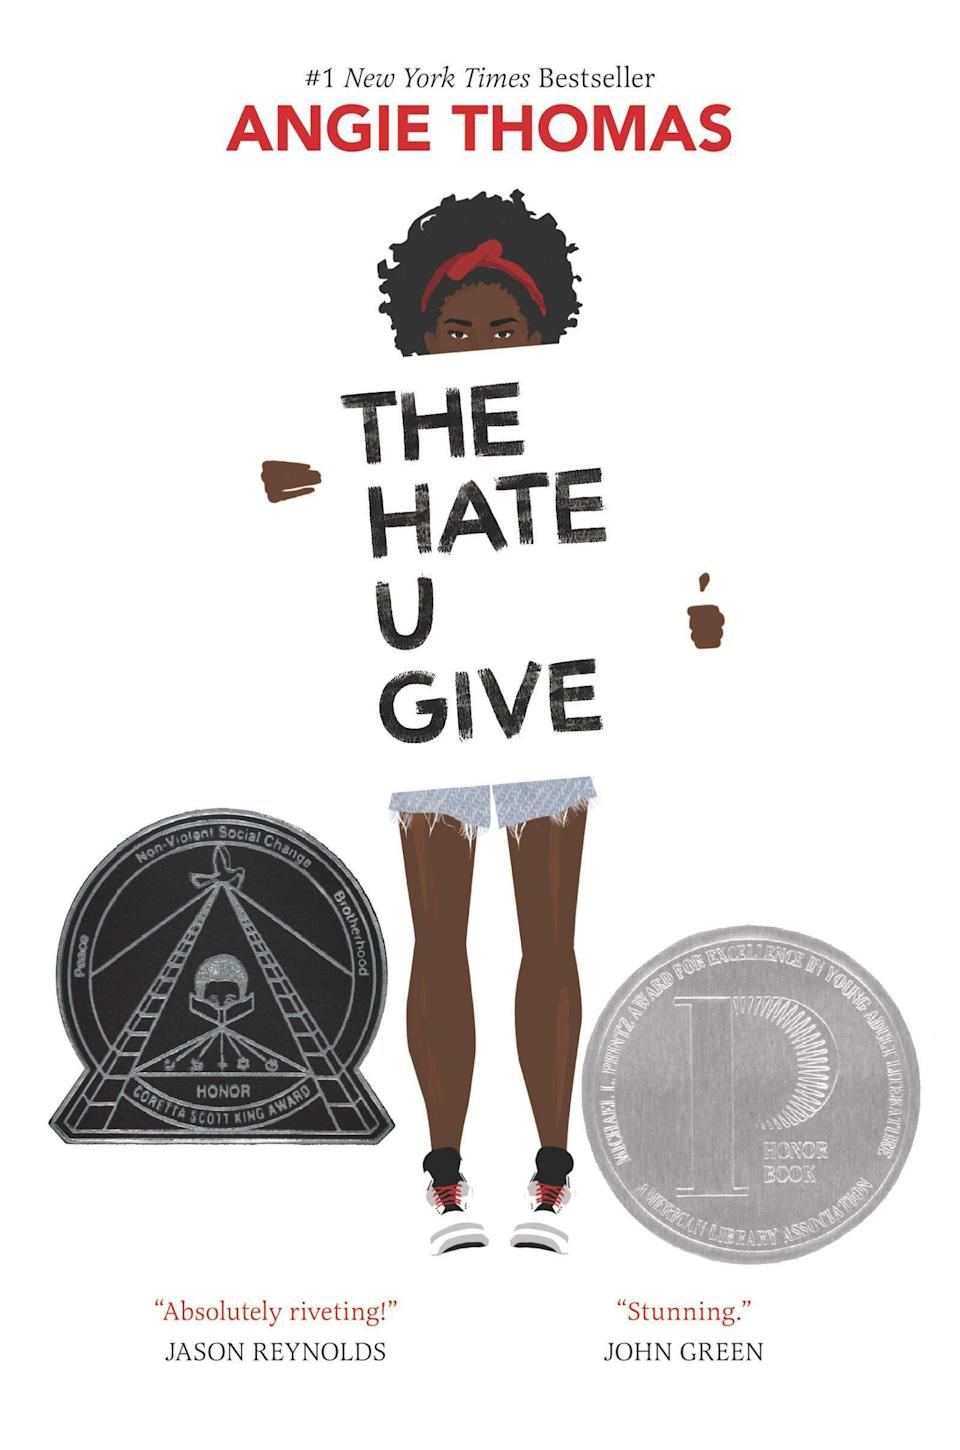 """<p><strong>Angie Thomas</strong></p><p>bookshop.org</p><p><strong>$17.47</strong></p><p><a href=""""https://bookshop.org/books/the-hate-u-give/9780062498533"""" rel=""""nofollow noopener"""" target=""""_blank"""" data-ylk=""""slk:BUY IT HERE"""" class=""""link rapid-noclick-resp"""">BUY IT HERE</a></p><p>The narrator of this YA novel, Starr, commutes to her mostly white prep school every day from the poor neighborhood where she lives with her family. These two worlds collide when Starr witnesses a police officer shooting her friend, Khalil, an unarmed black boy, sparking mass protests and a media frenzy.</p>"""